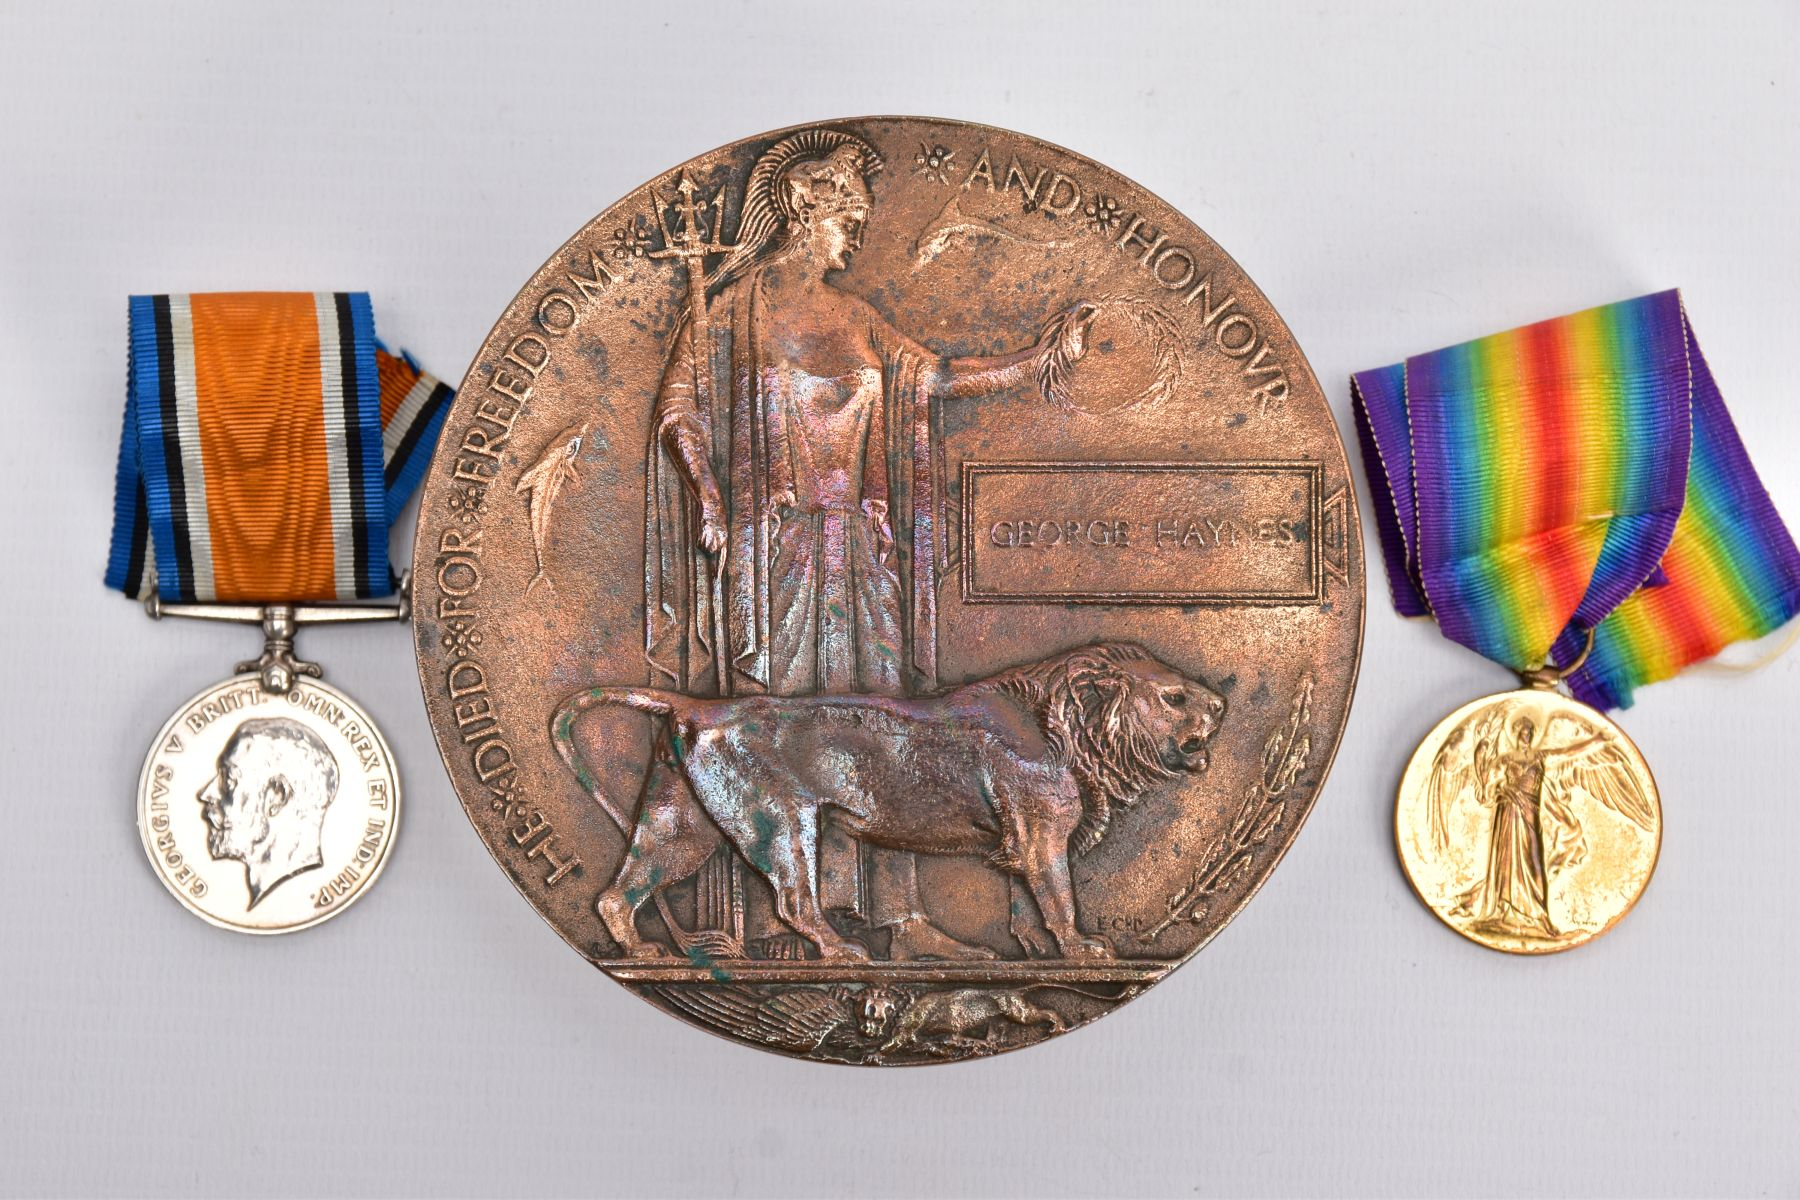 A WWI MEMORIAL DEATH PLAQUE named George Haynes, together with a British War and Victory medal named